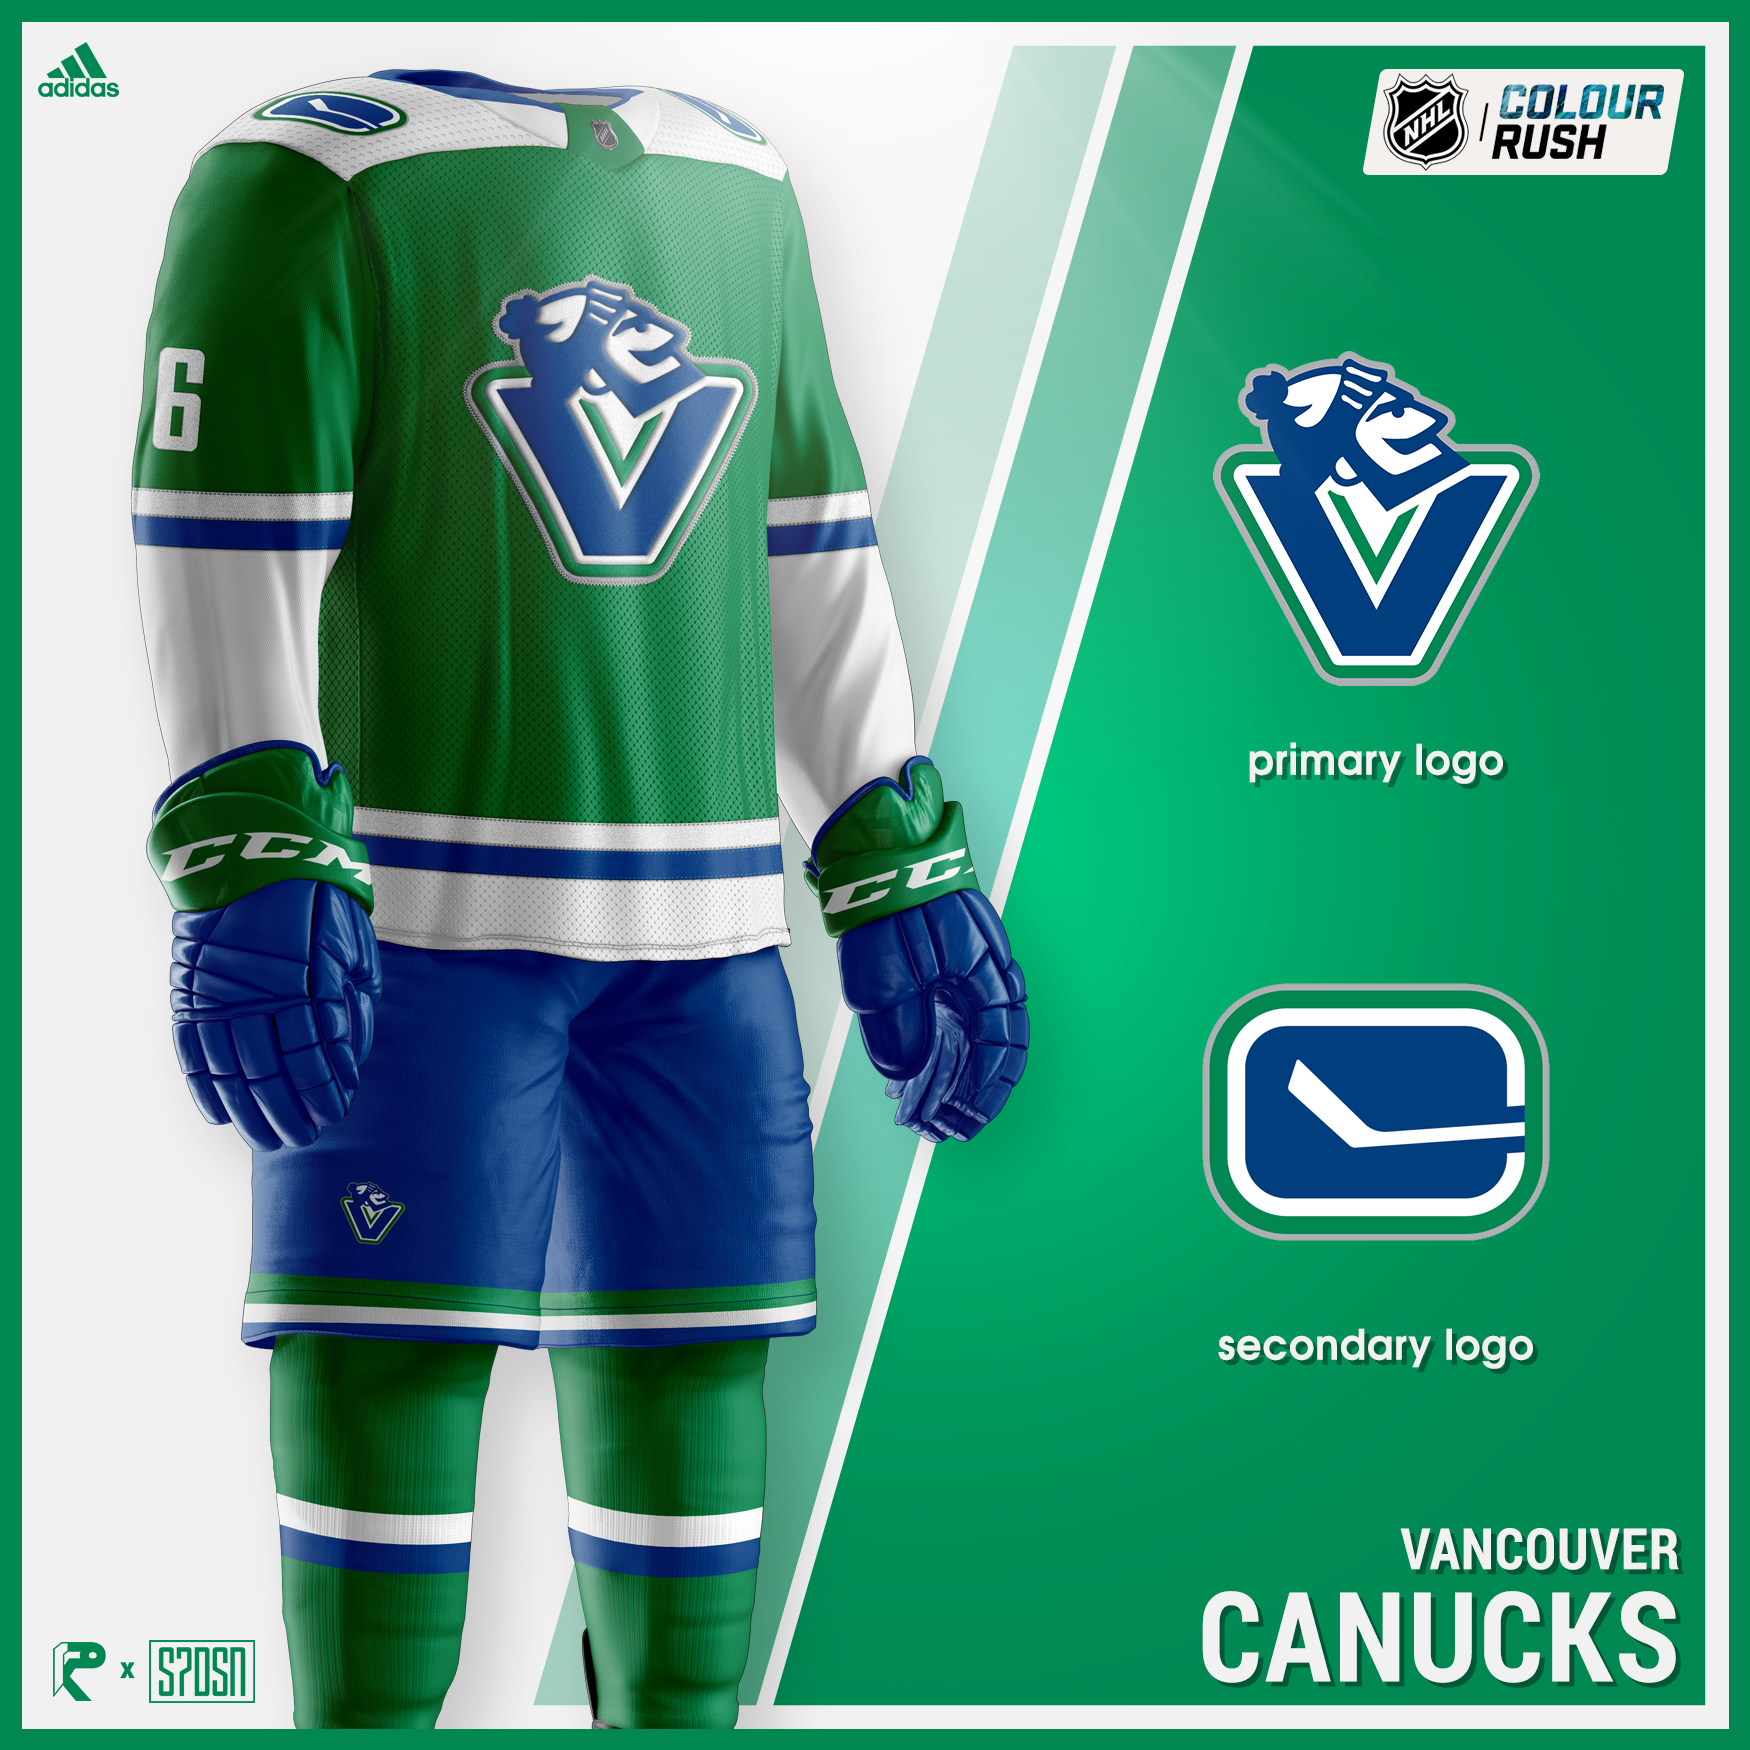 f51ceda8219 Another beauty mock-up 3rd by @S7Dsn NHL-Colour-Rush-Series : canucks